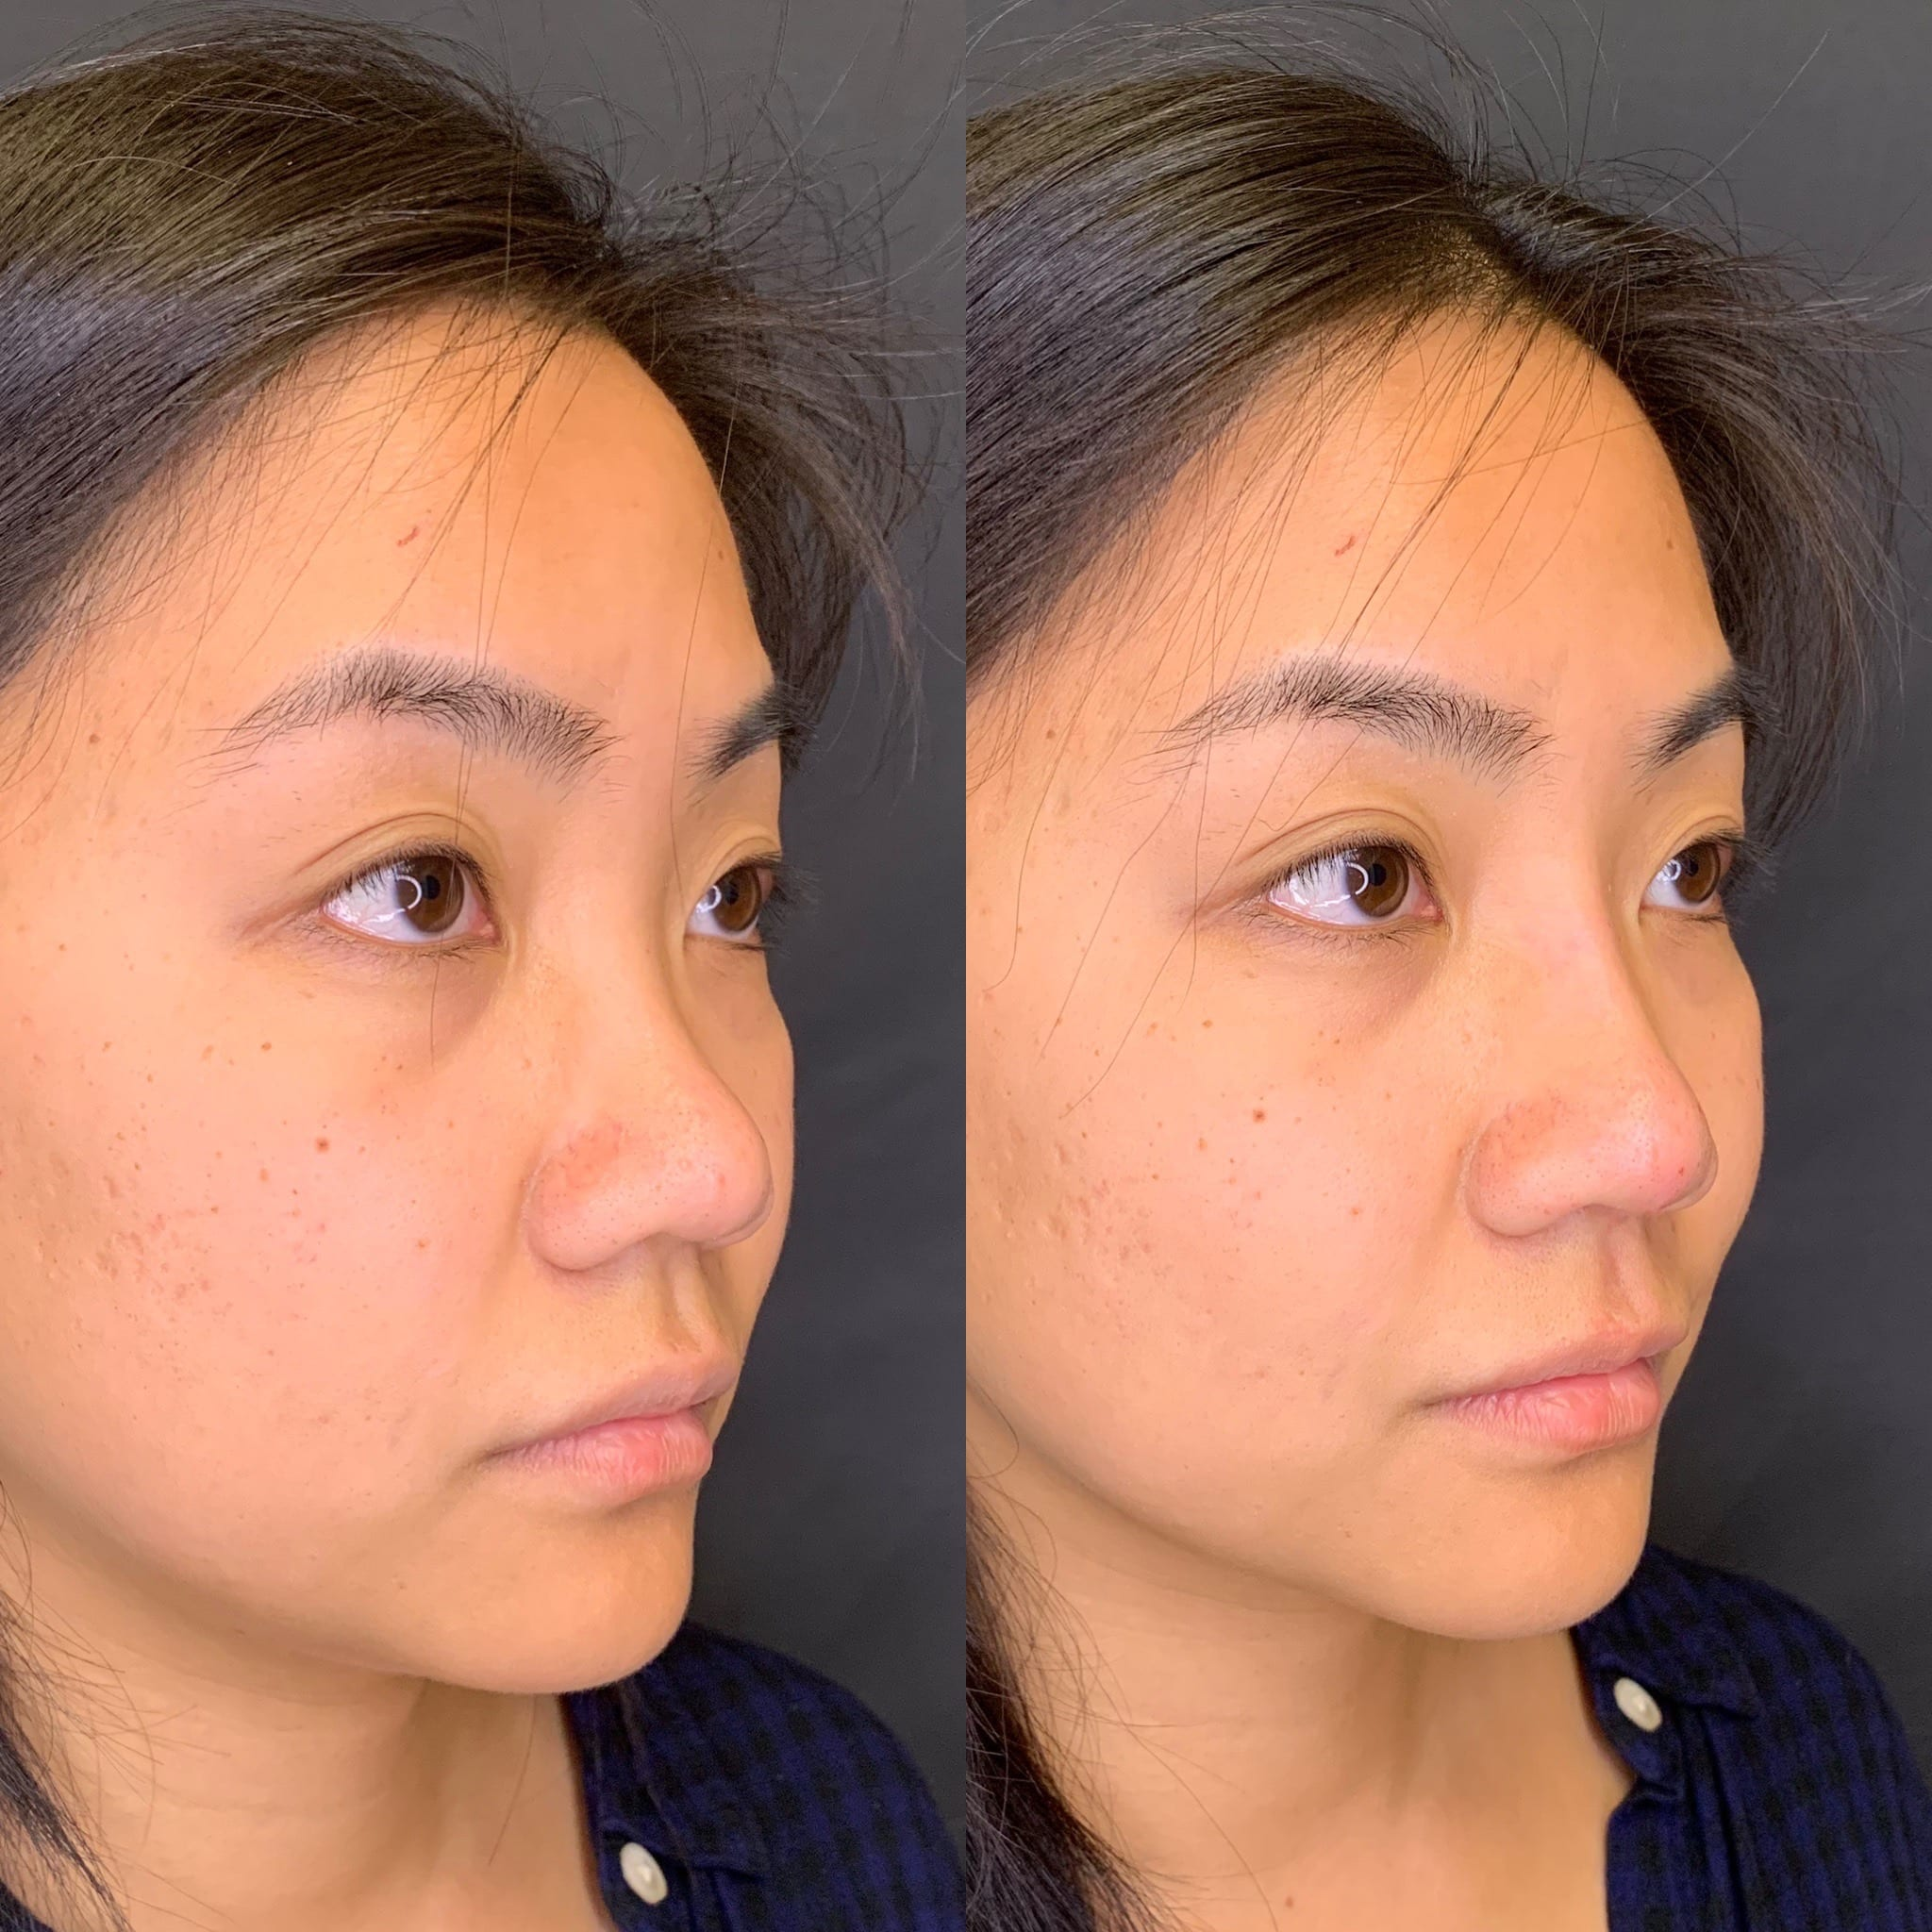 28 y/o Asian F immediately after injecting voluma along her nasal bridge to improve her projection.